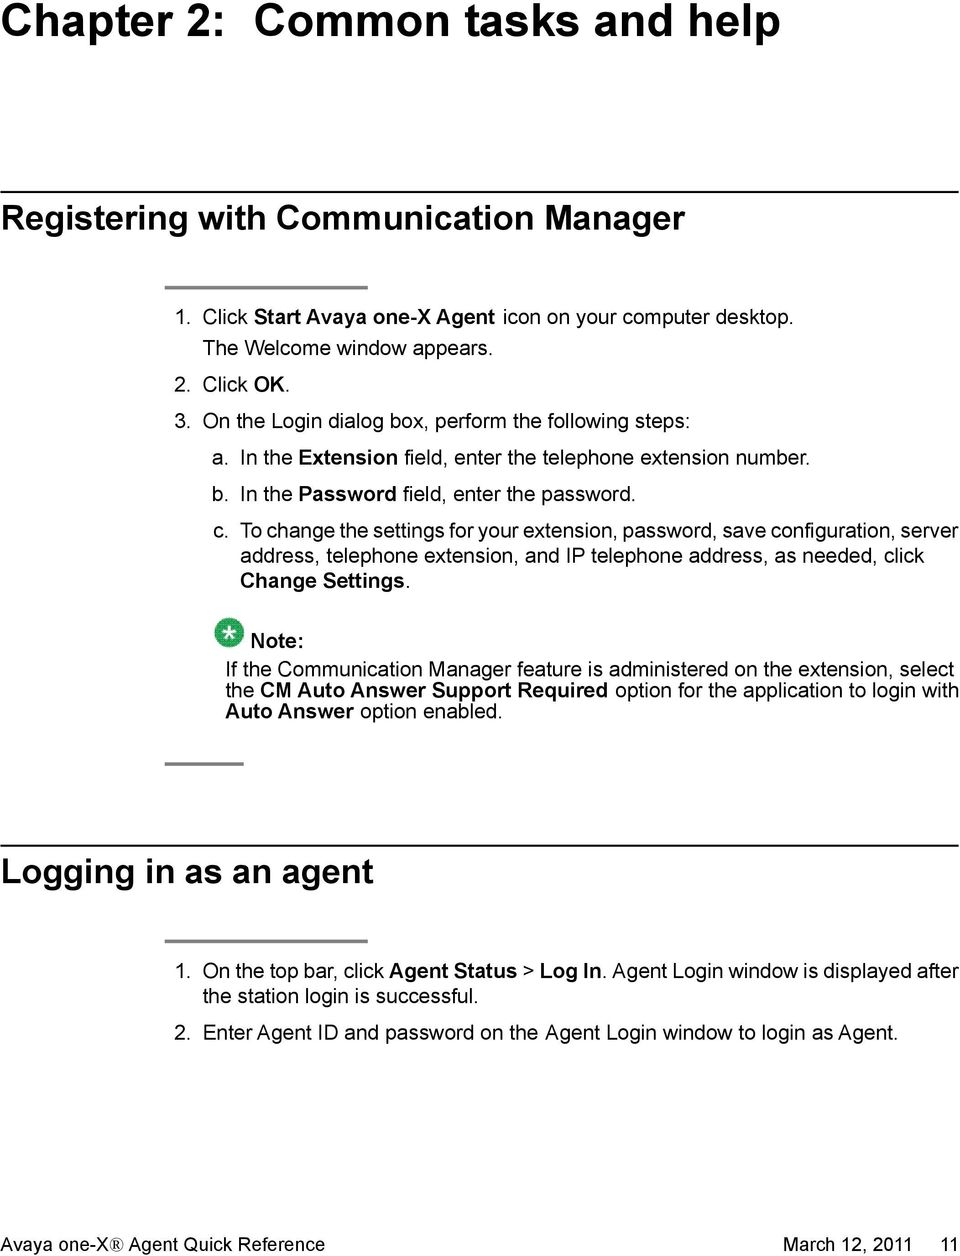 Avaya one-x Agent quick reference - PDF